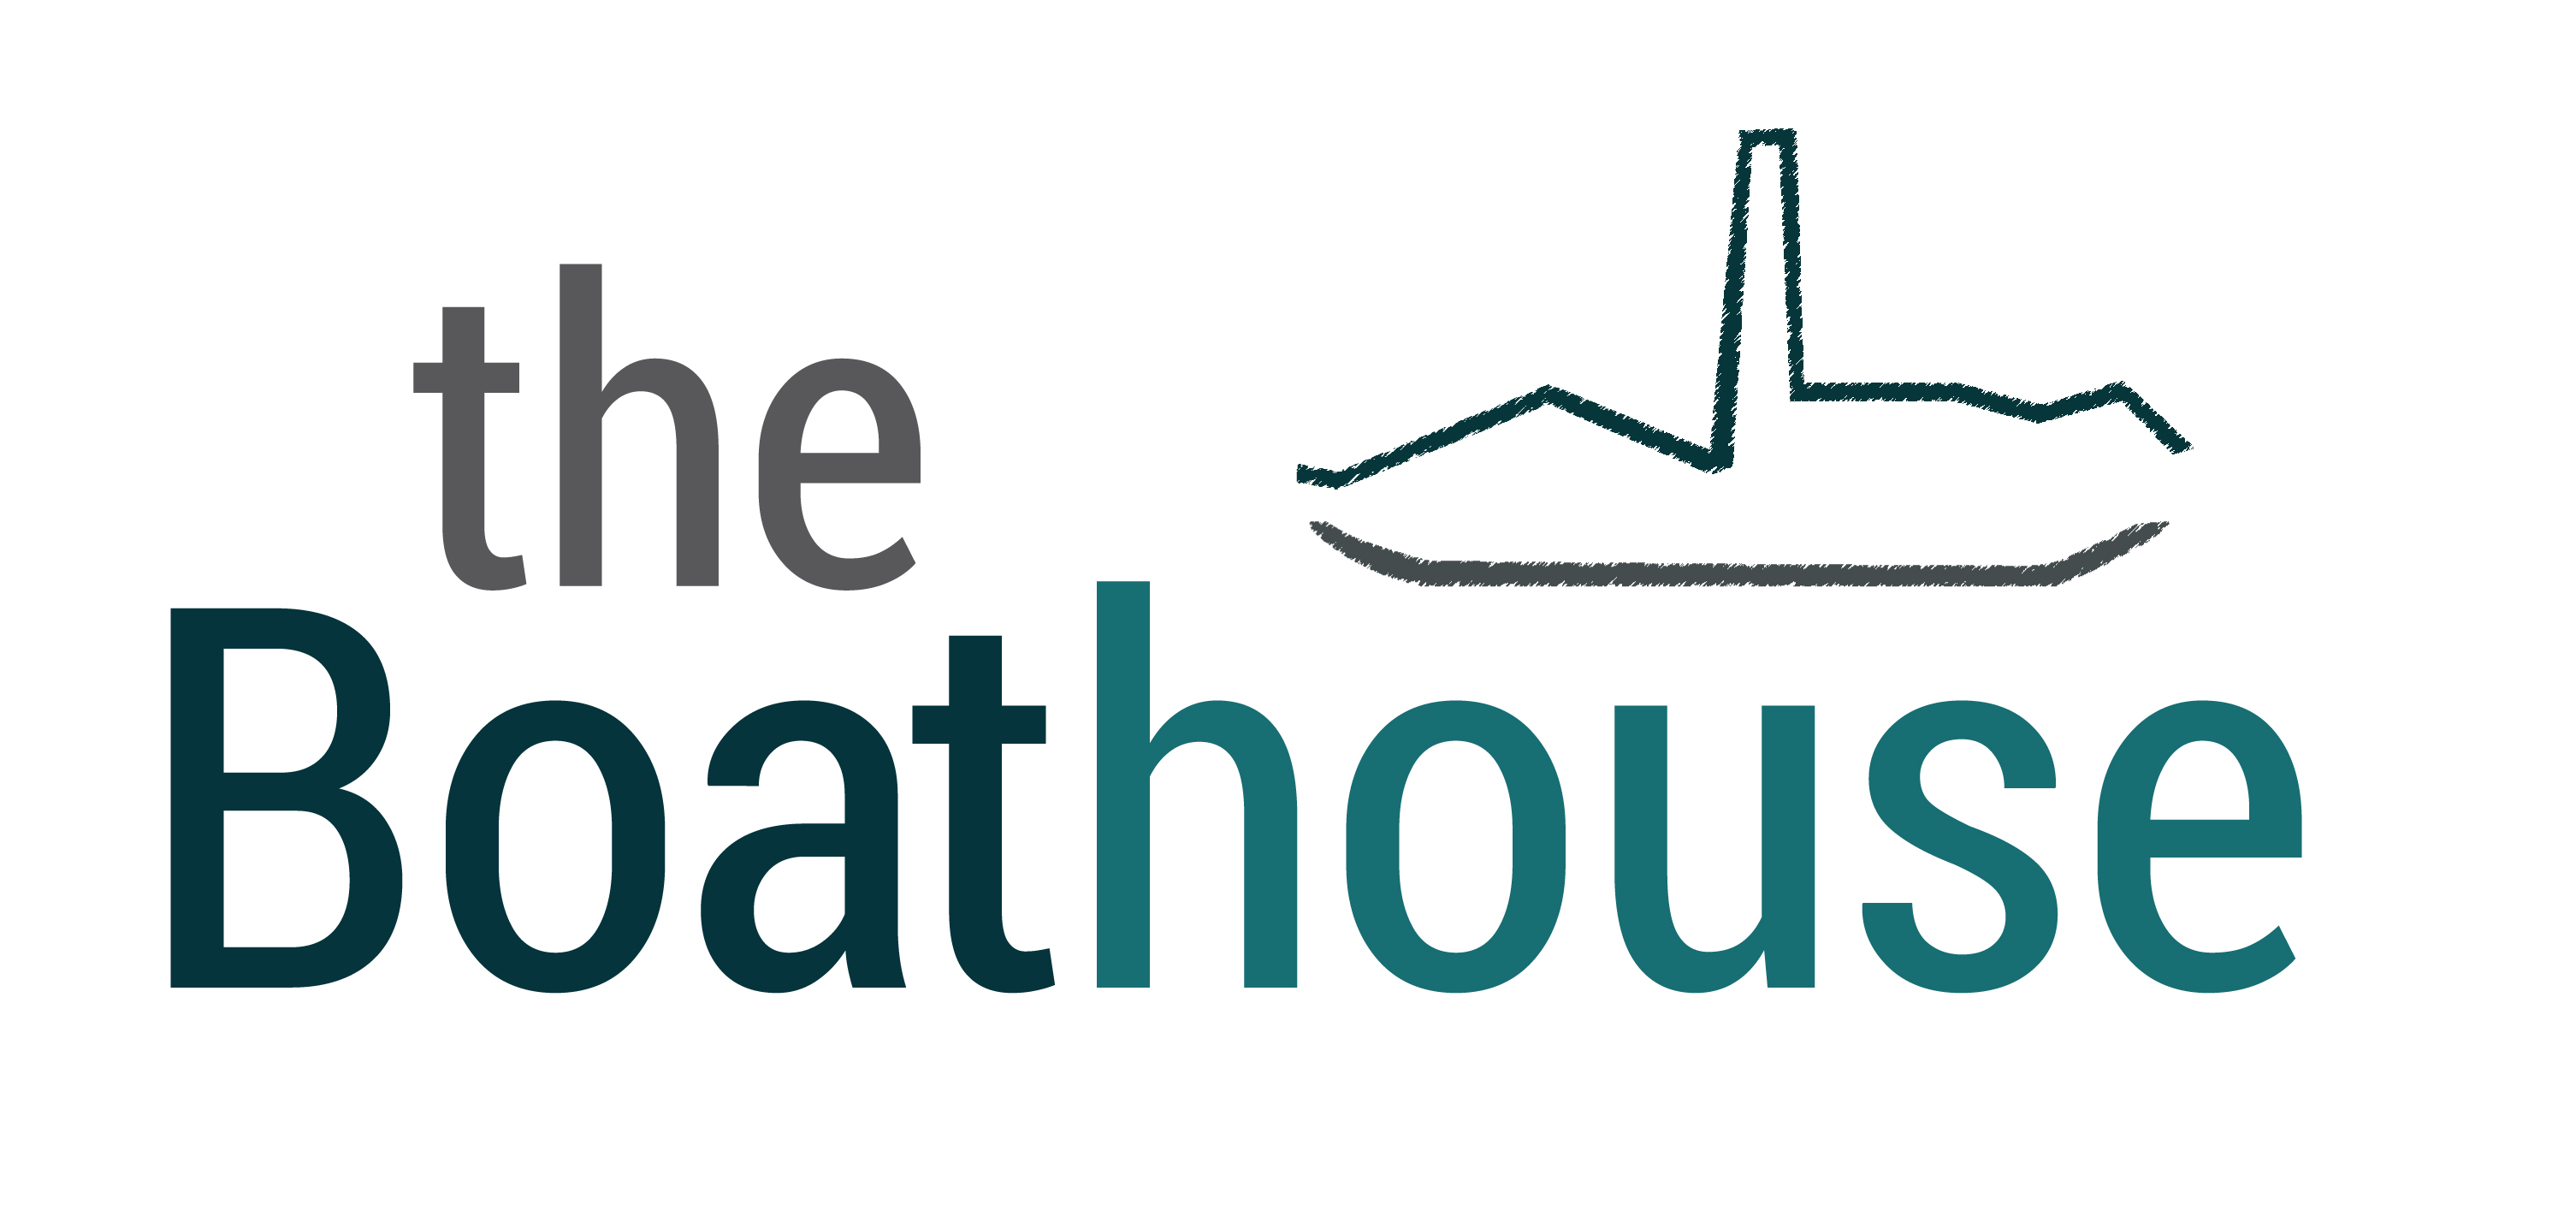 The Boathouse, London